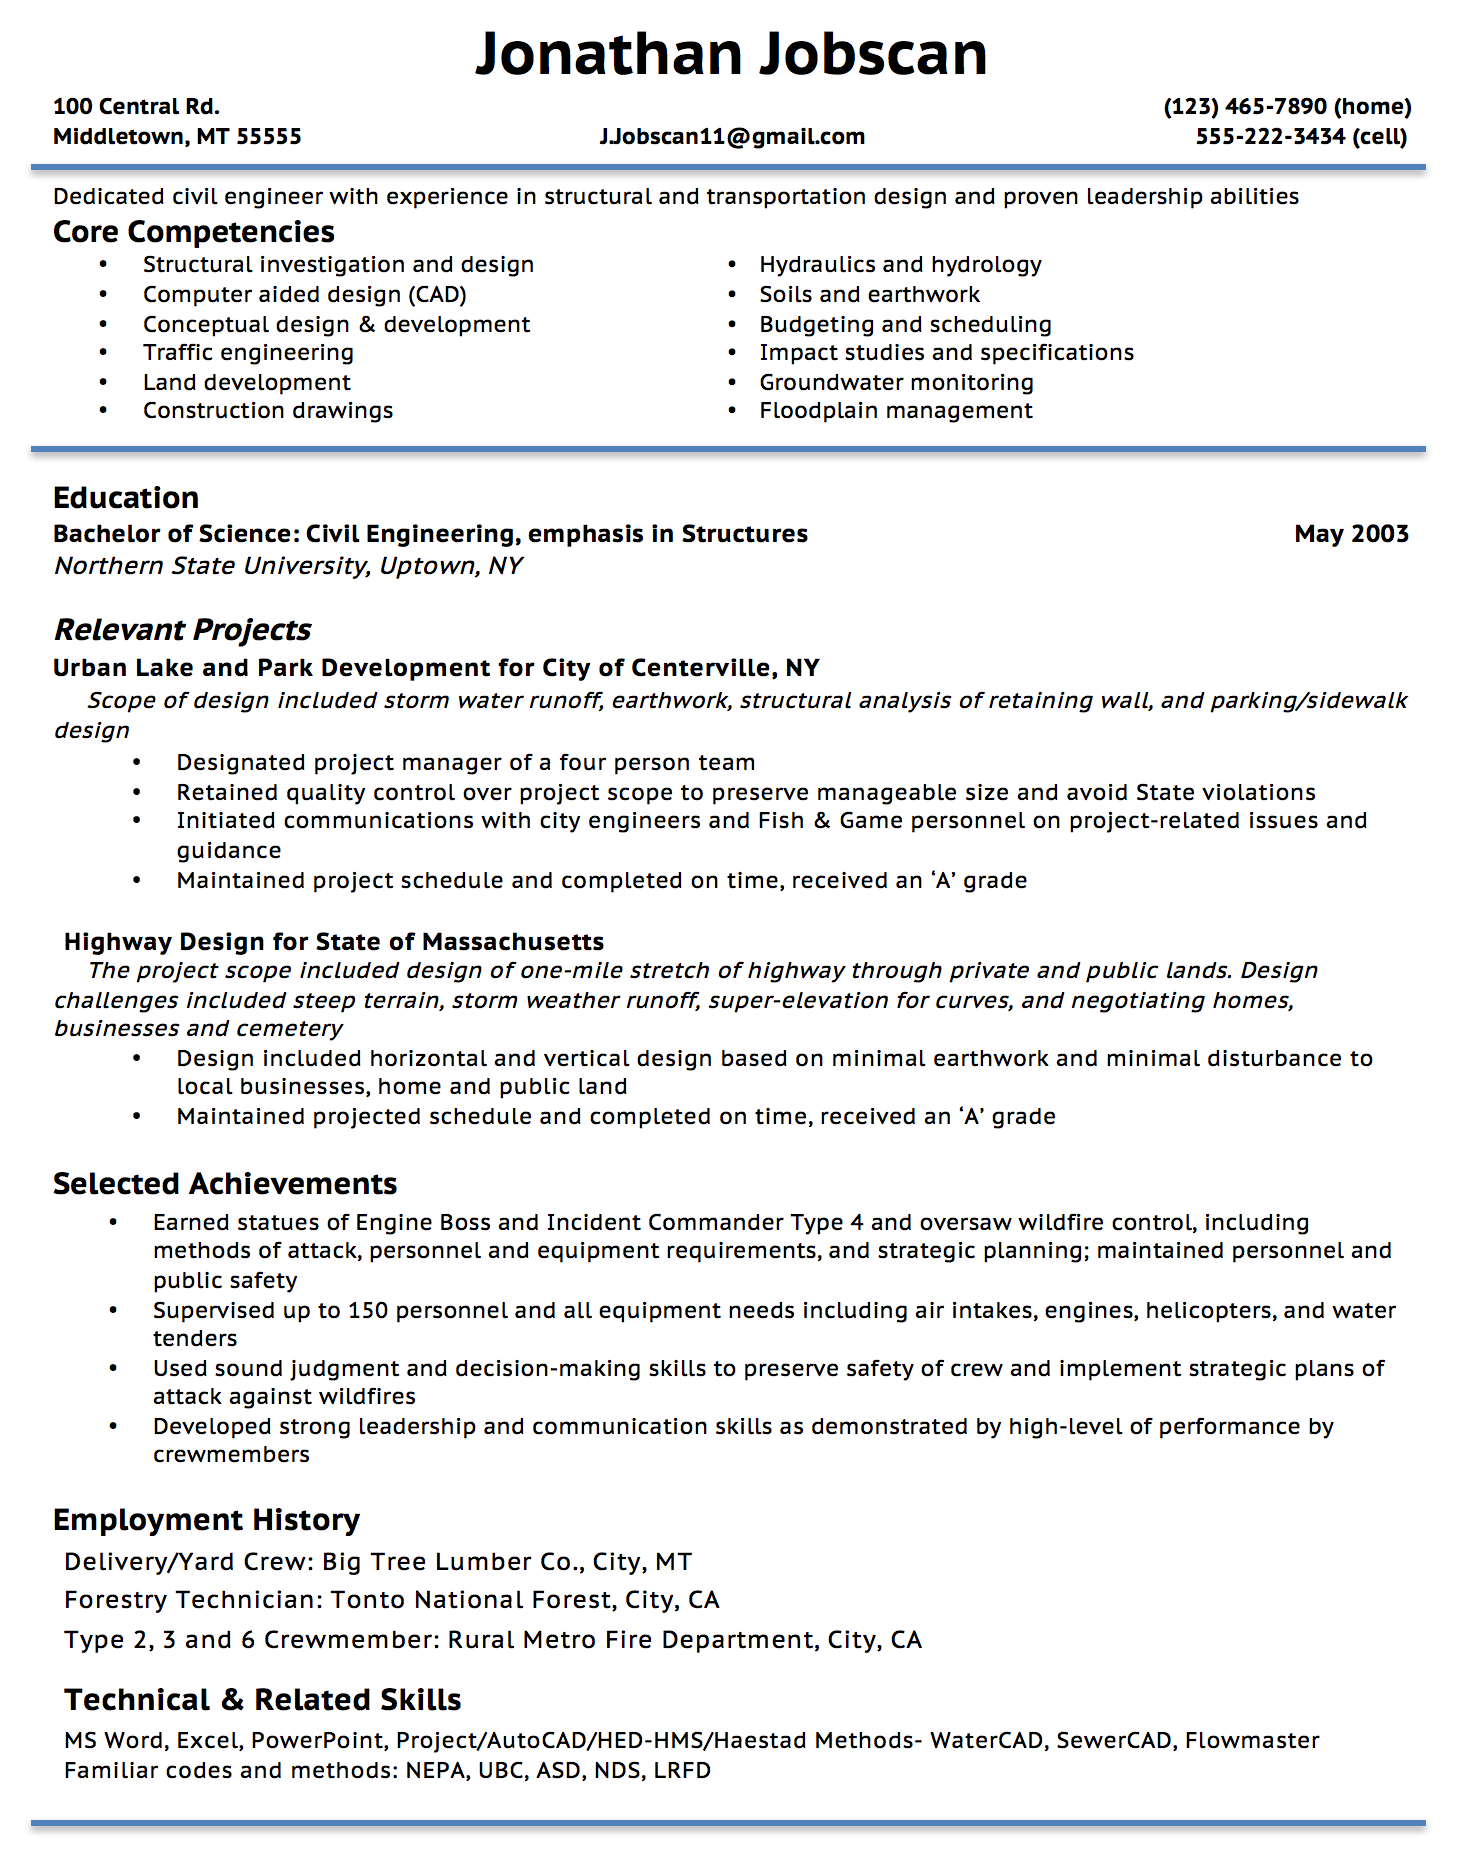 Opposenewapstandardsus  Scenic Resume Writing Guide  Jobscan With Heavenly Example Of A Functional Resume Format With Appealing Simple Resumes Samples Also Recent College Graduate Resume Examples In Addition Healthcare Manager Resume And Words To Use On Your Resume As Well As Web Developer Resume Example Additionally Manager Resume Example From Jobscanco With Opposenewapstandardsus  Heavenly Resume Writing Guide  Jobscan With Appealing Example Of A Functional Resume Format And Scenic Simple Resumes Samples Also Recent College Graduate Resume Examples In Addition Healthcare Manager Resume From Jobscanco